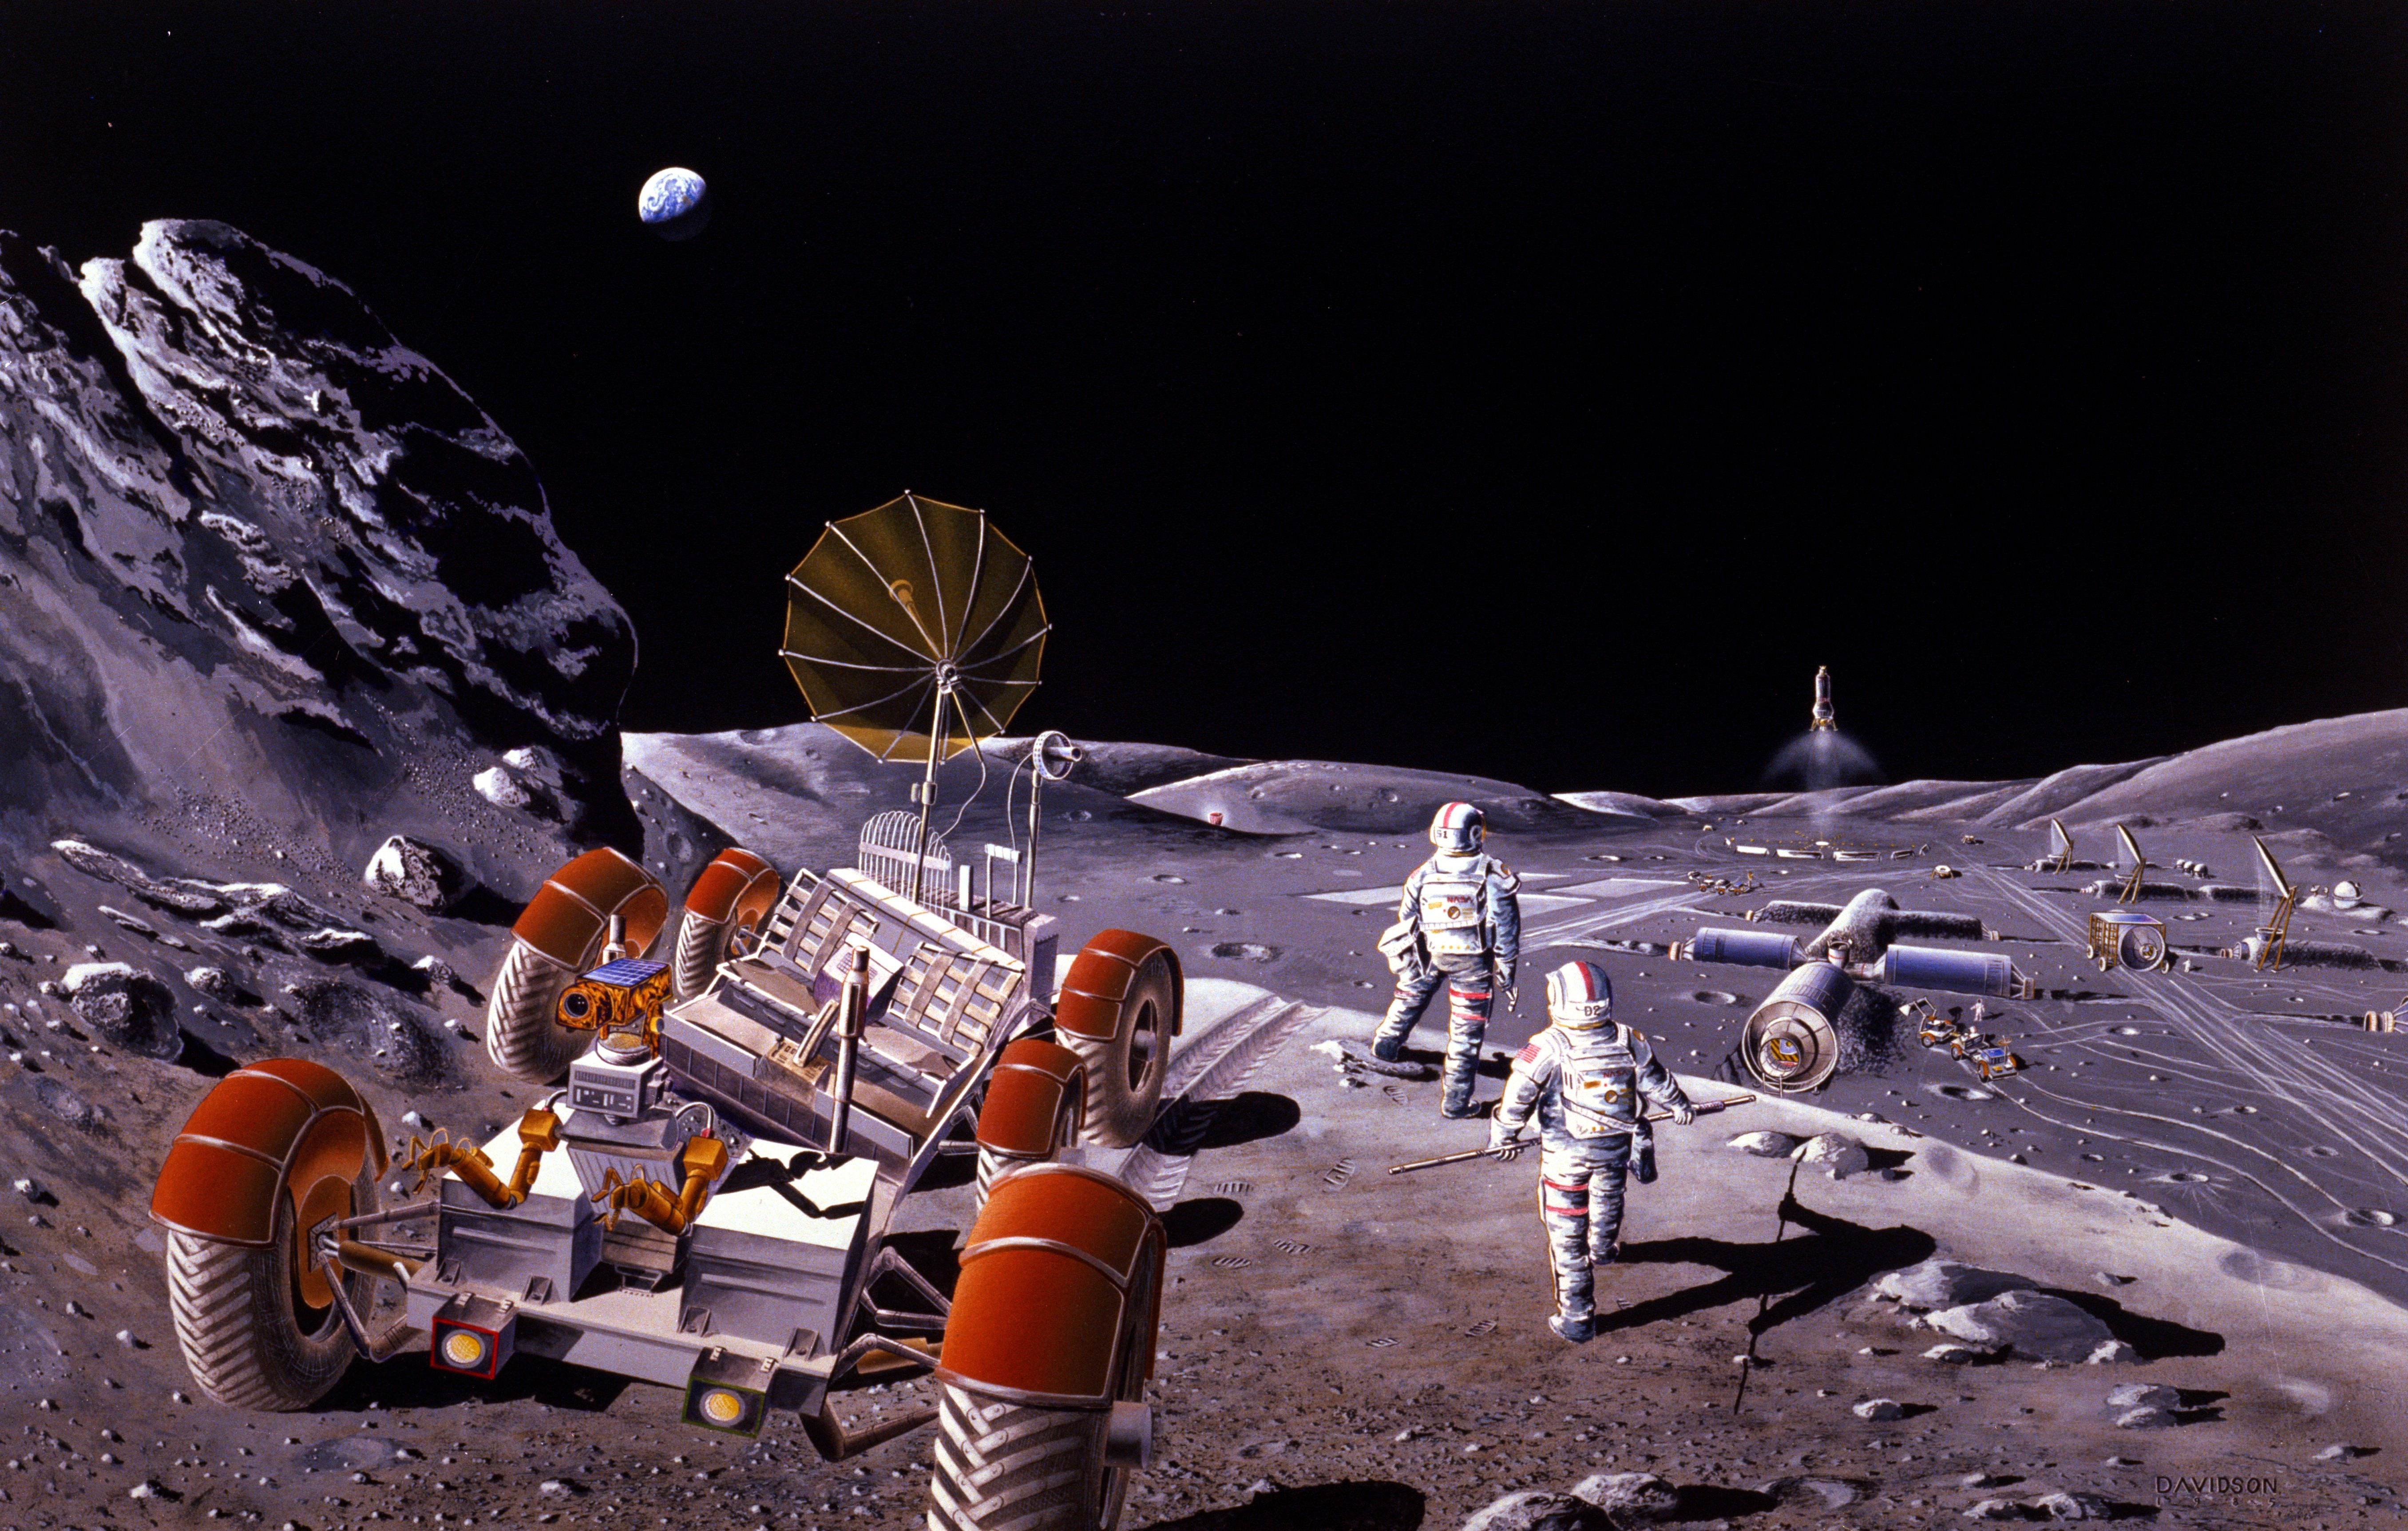 Artist concept of a base on the Moon. Credit: NASA, via Wikipedia